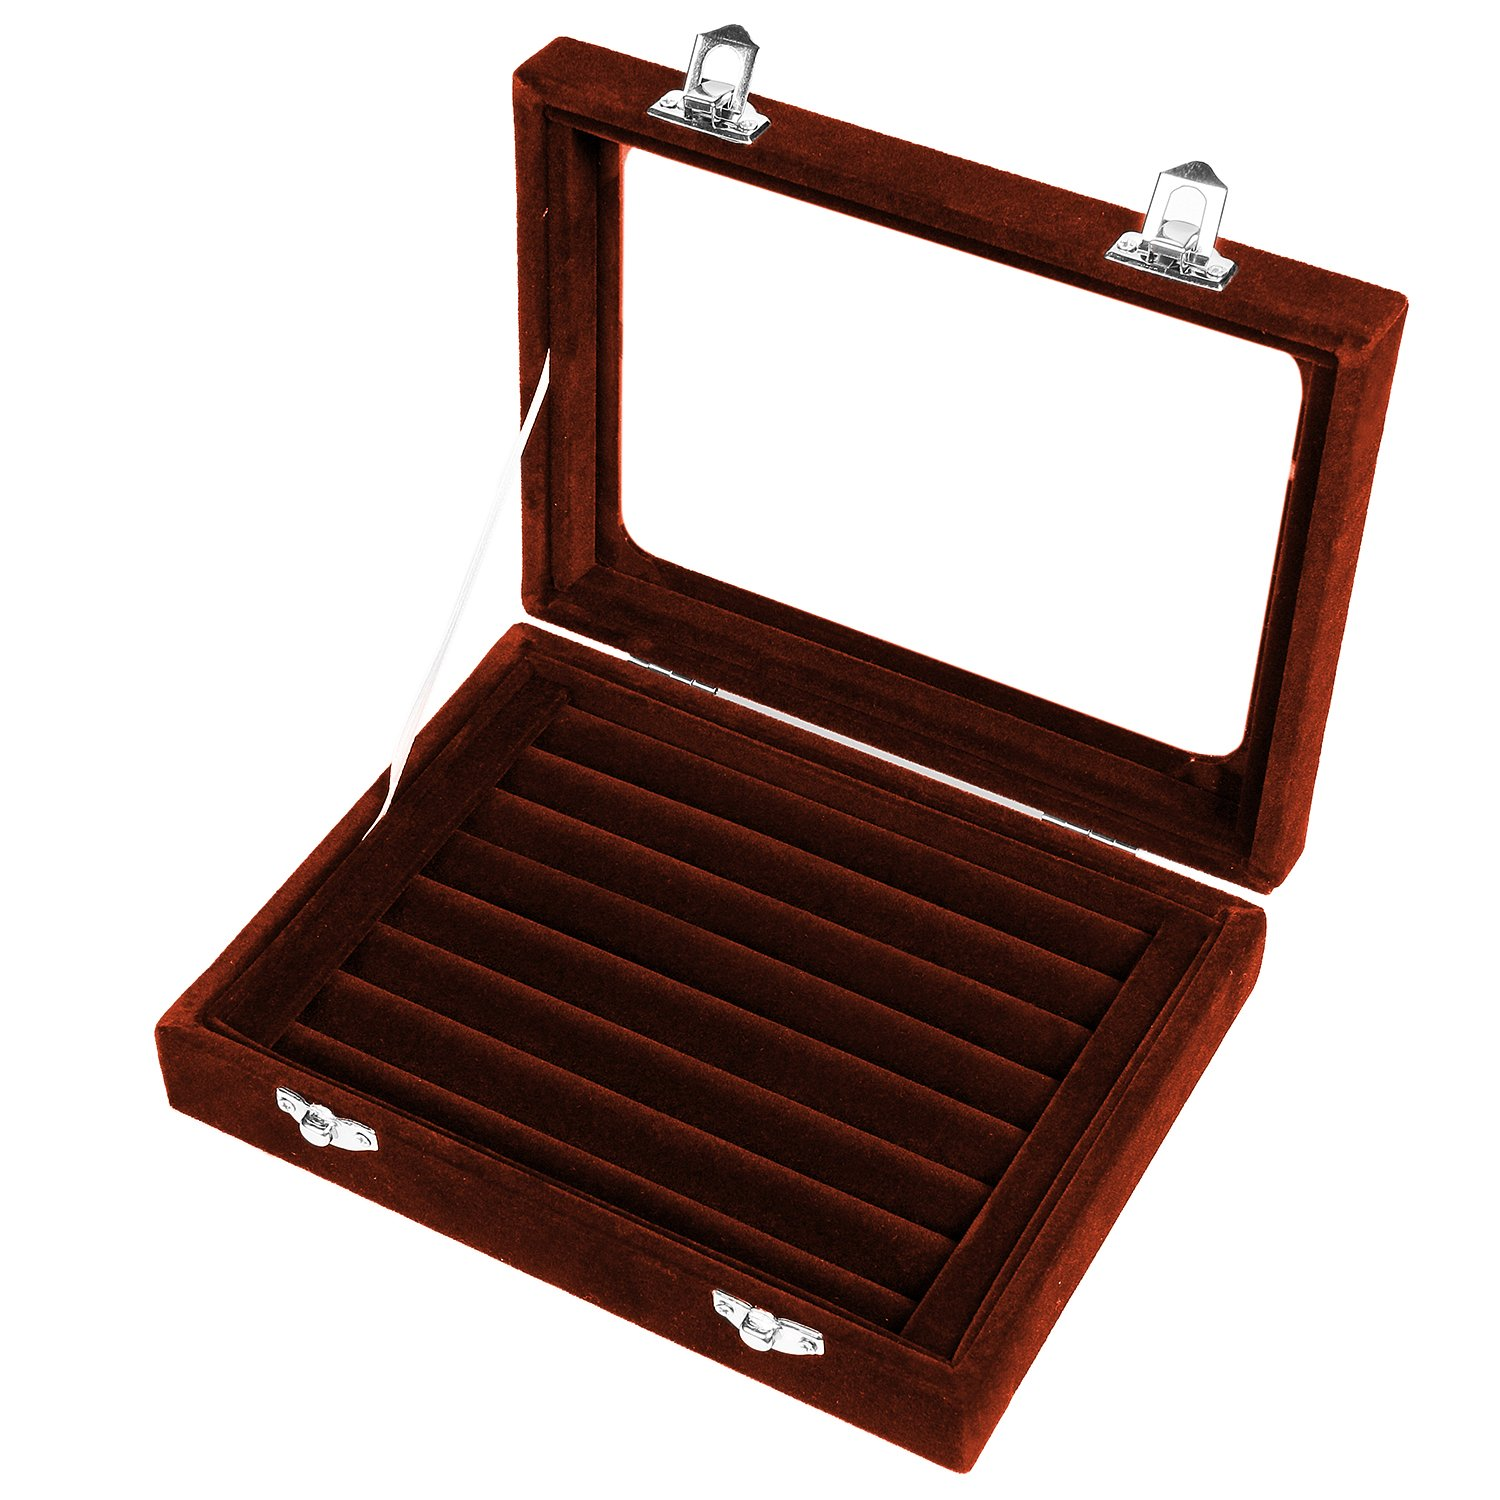 Basuwell Earring Storage 7 Slots Velvet Jewelry Tray for Drawers Glass Clear Lid Showcase Display Ring Organizer Earring Ring Trays Holder Cufflink Showcase-Black JB07